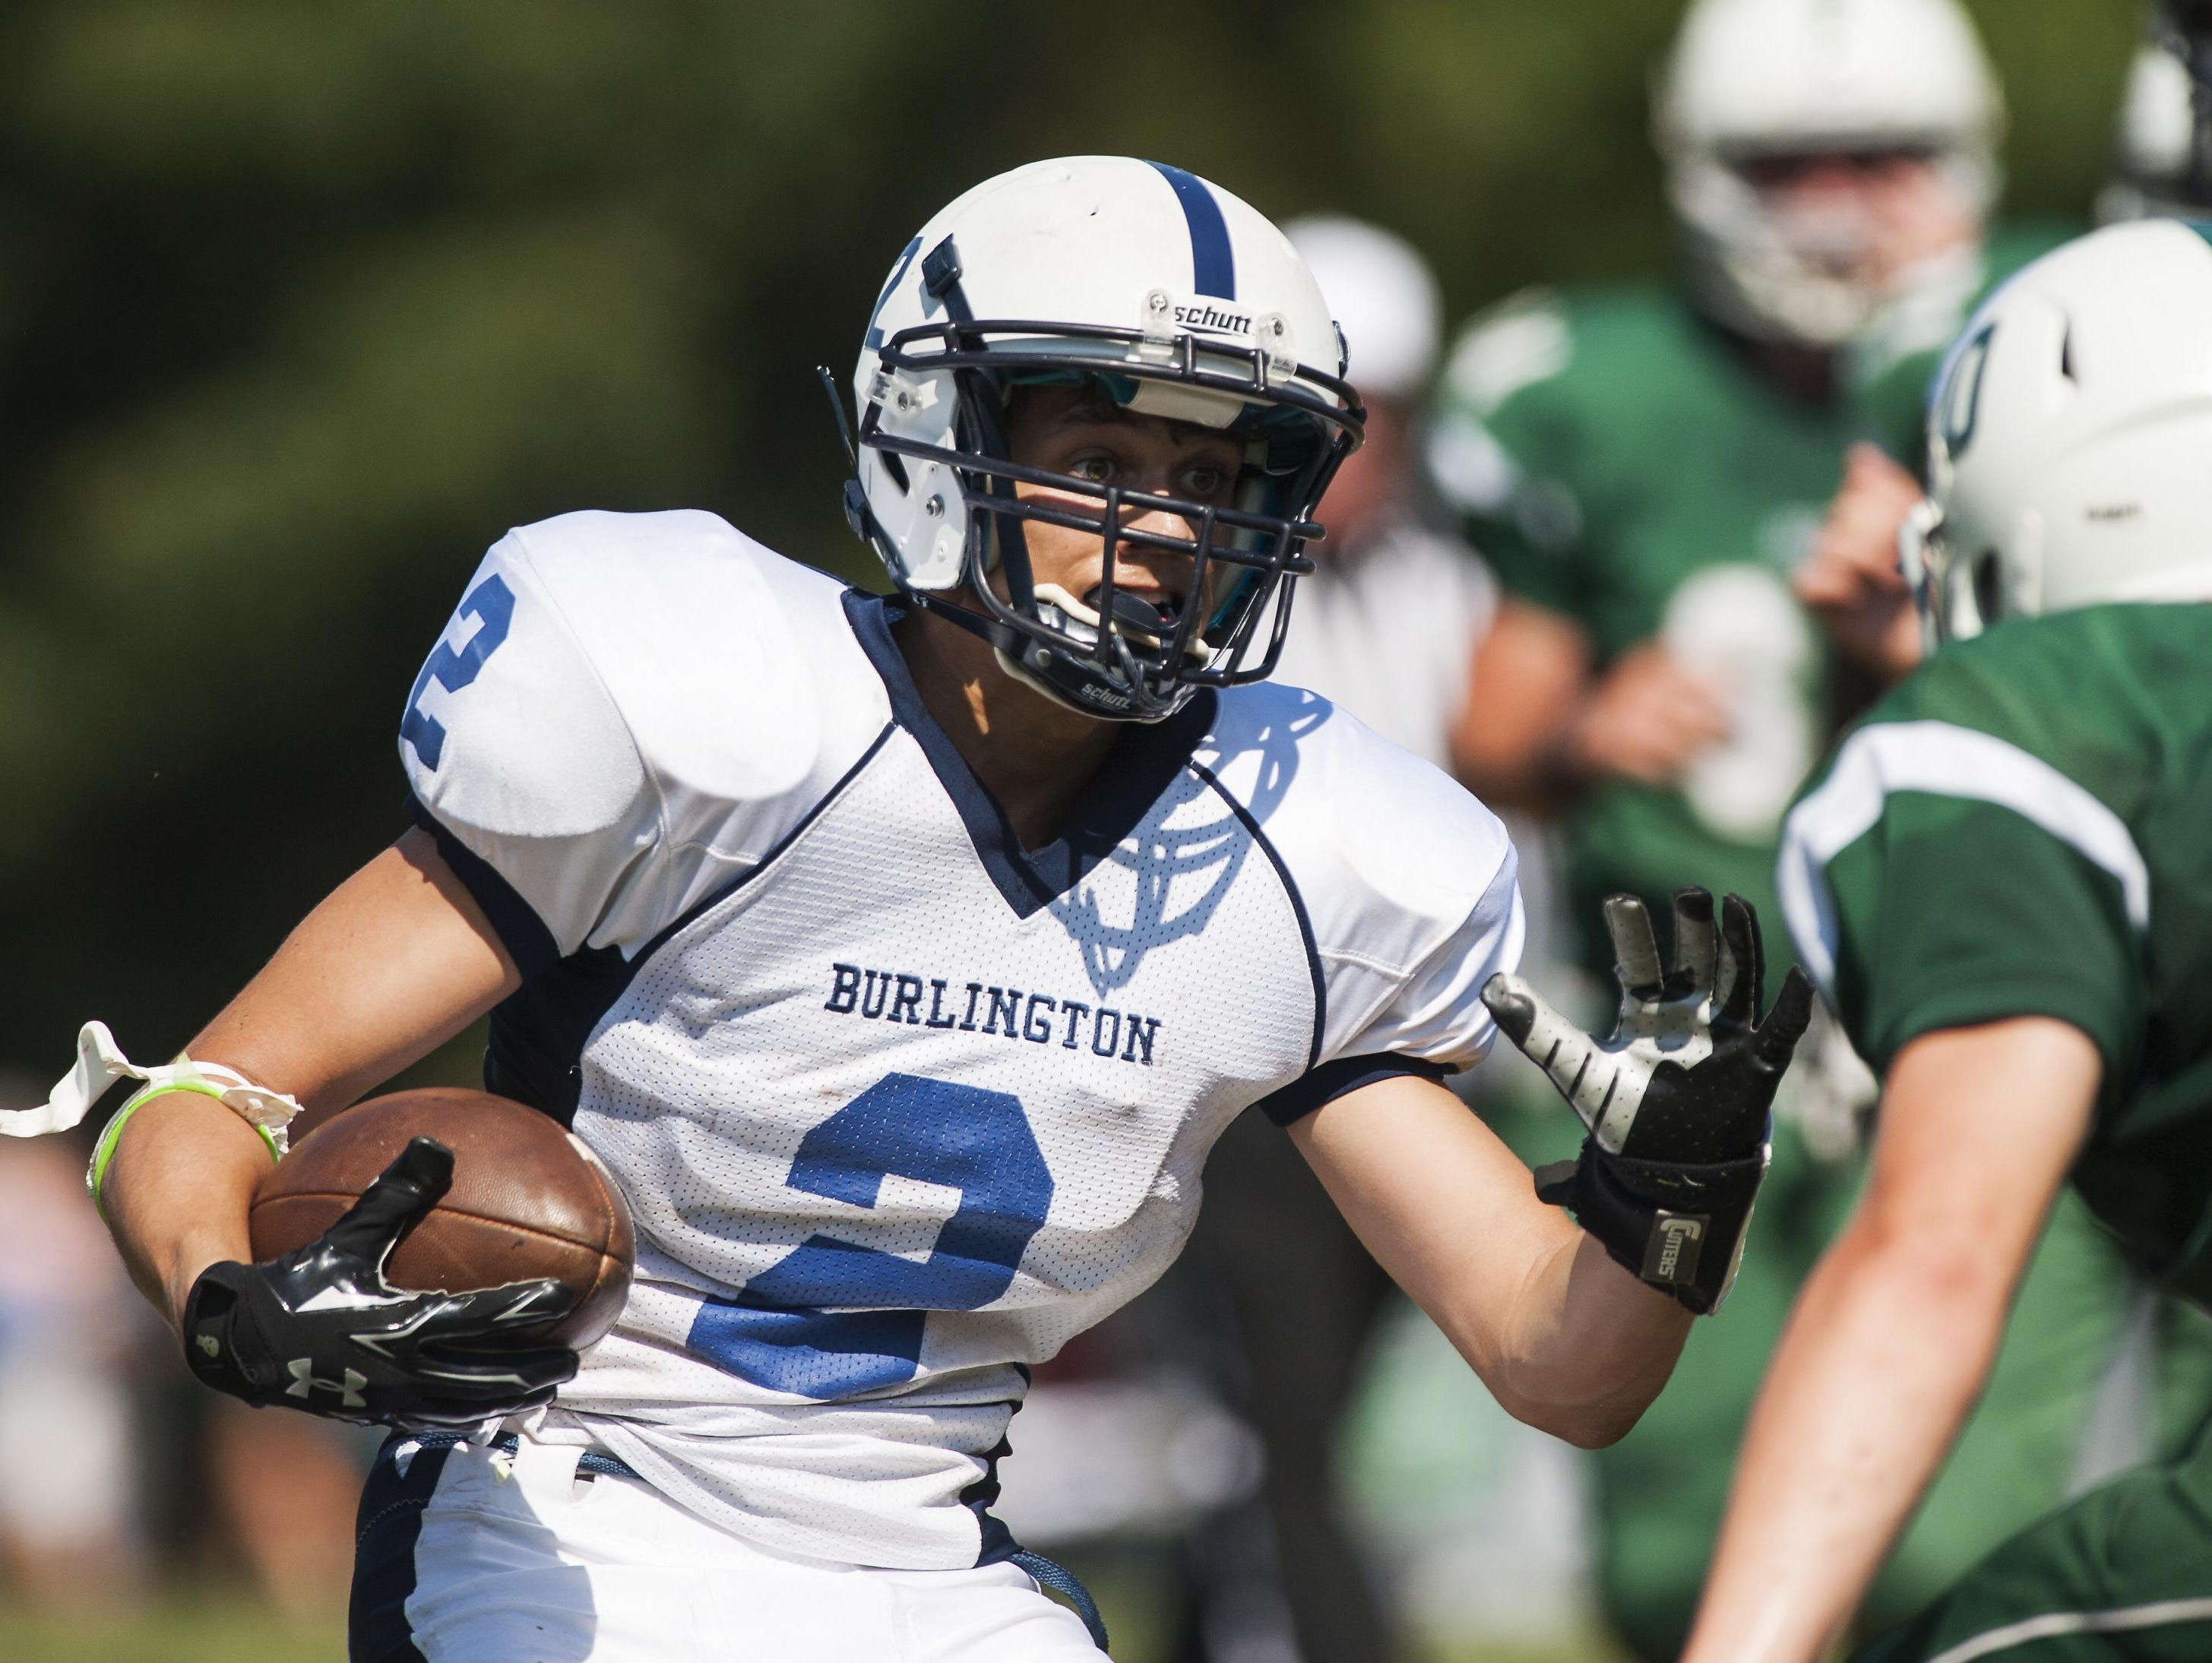 Burlington's Kevin Garrison (2) runs with the ball during the football game between the Burlington Seahorses and the Rice Green Knights at Rice Memorial High School on Sept. 5, 2015.